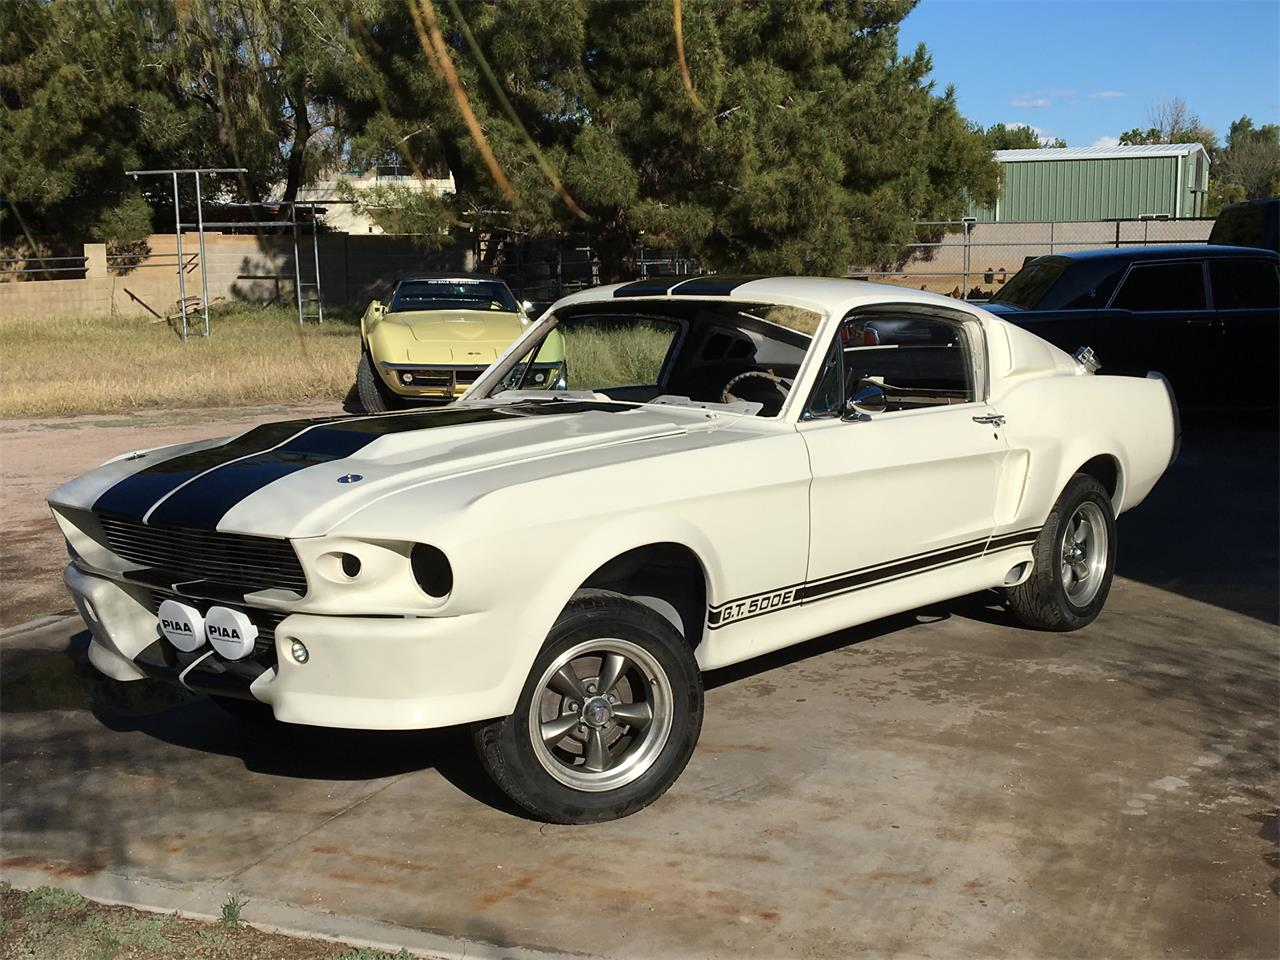 Large picture of classic 1968 mustang gt500 offered by a private seller phns